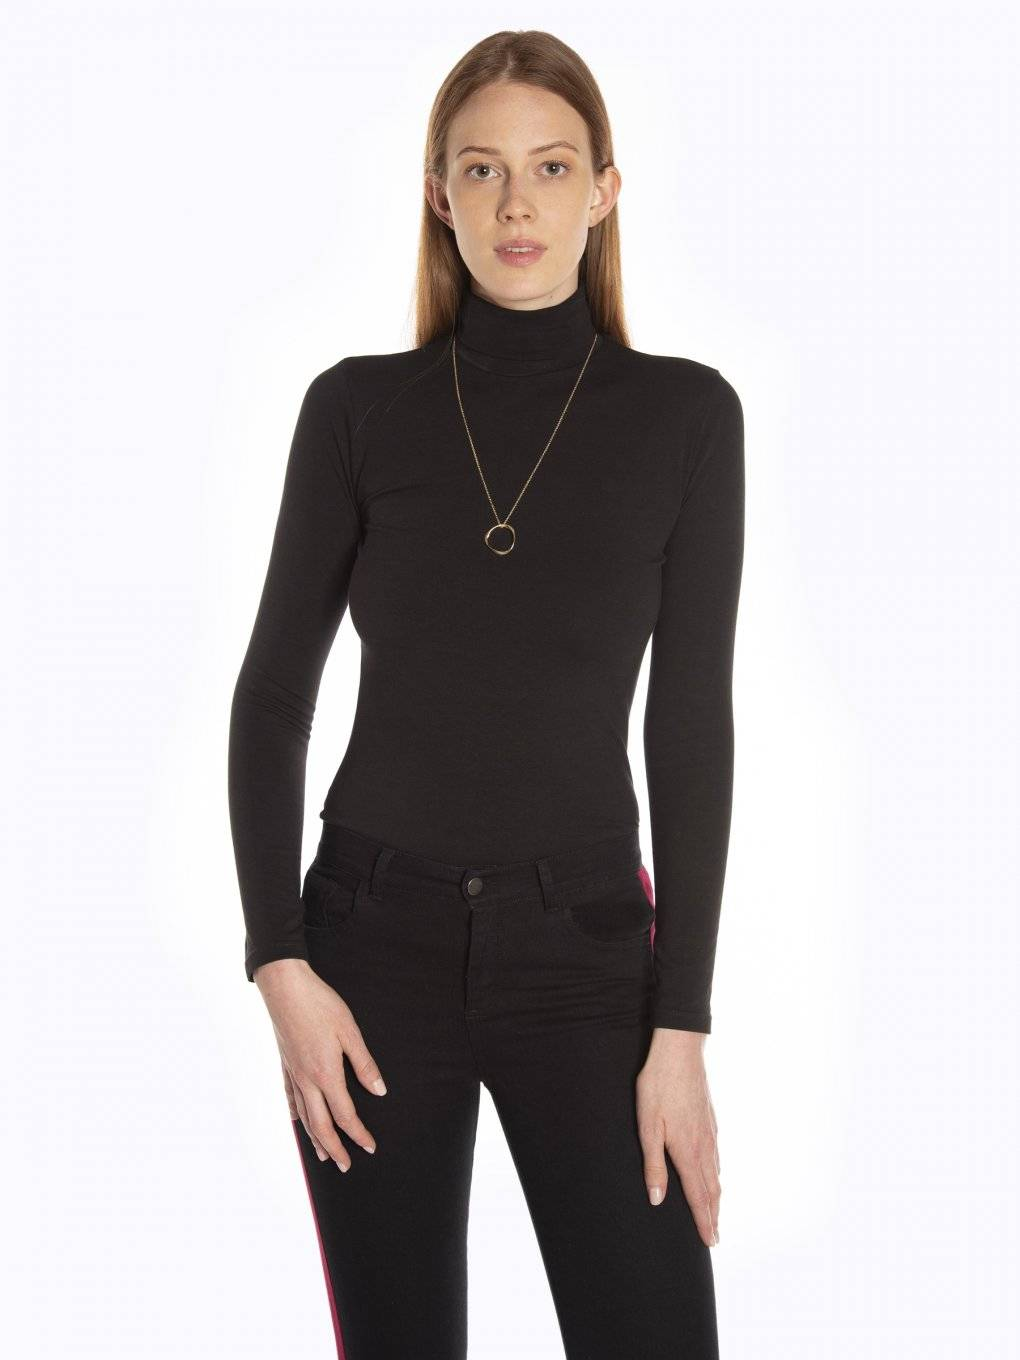 Basic turtleneck t-shirt